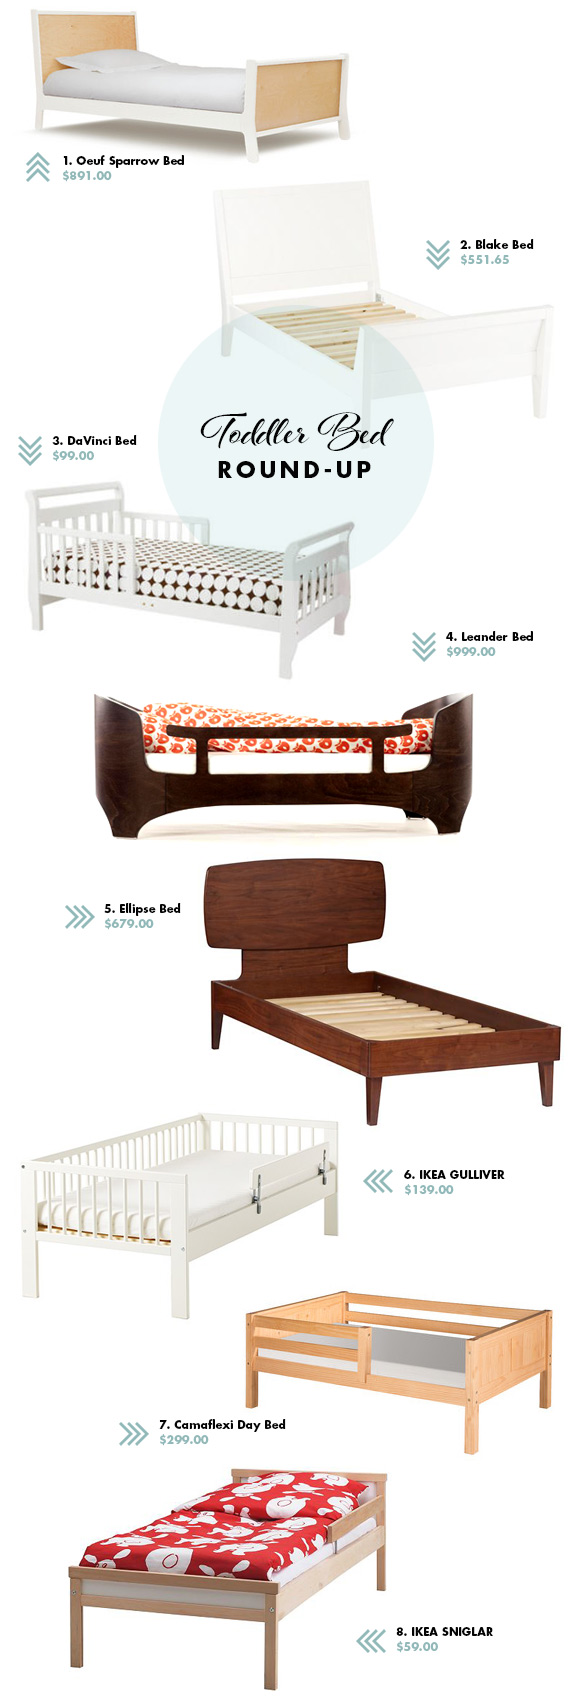 Toddler bed round up | http://www.100layercakelet.com/?p=19883